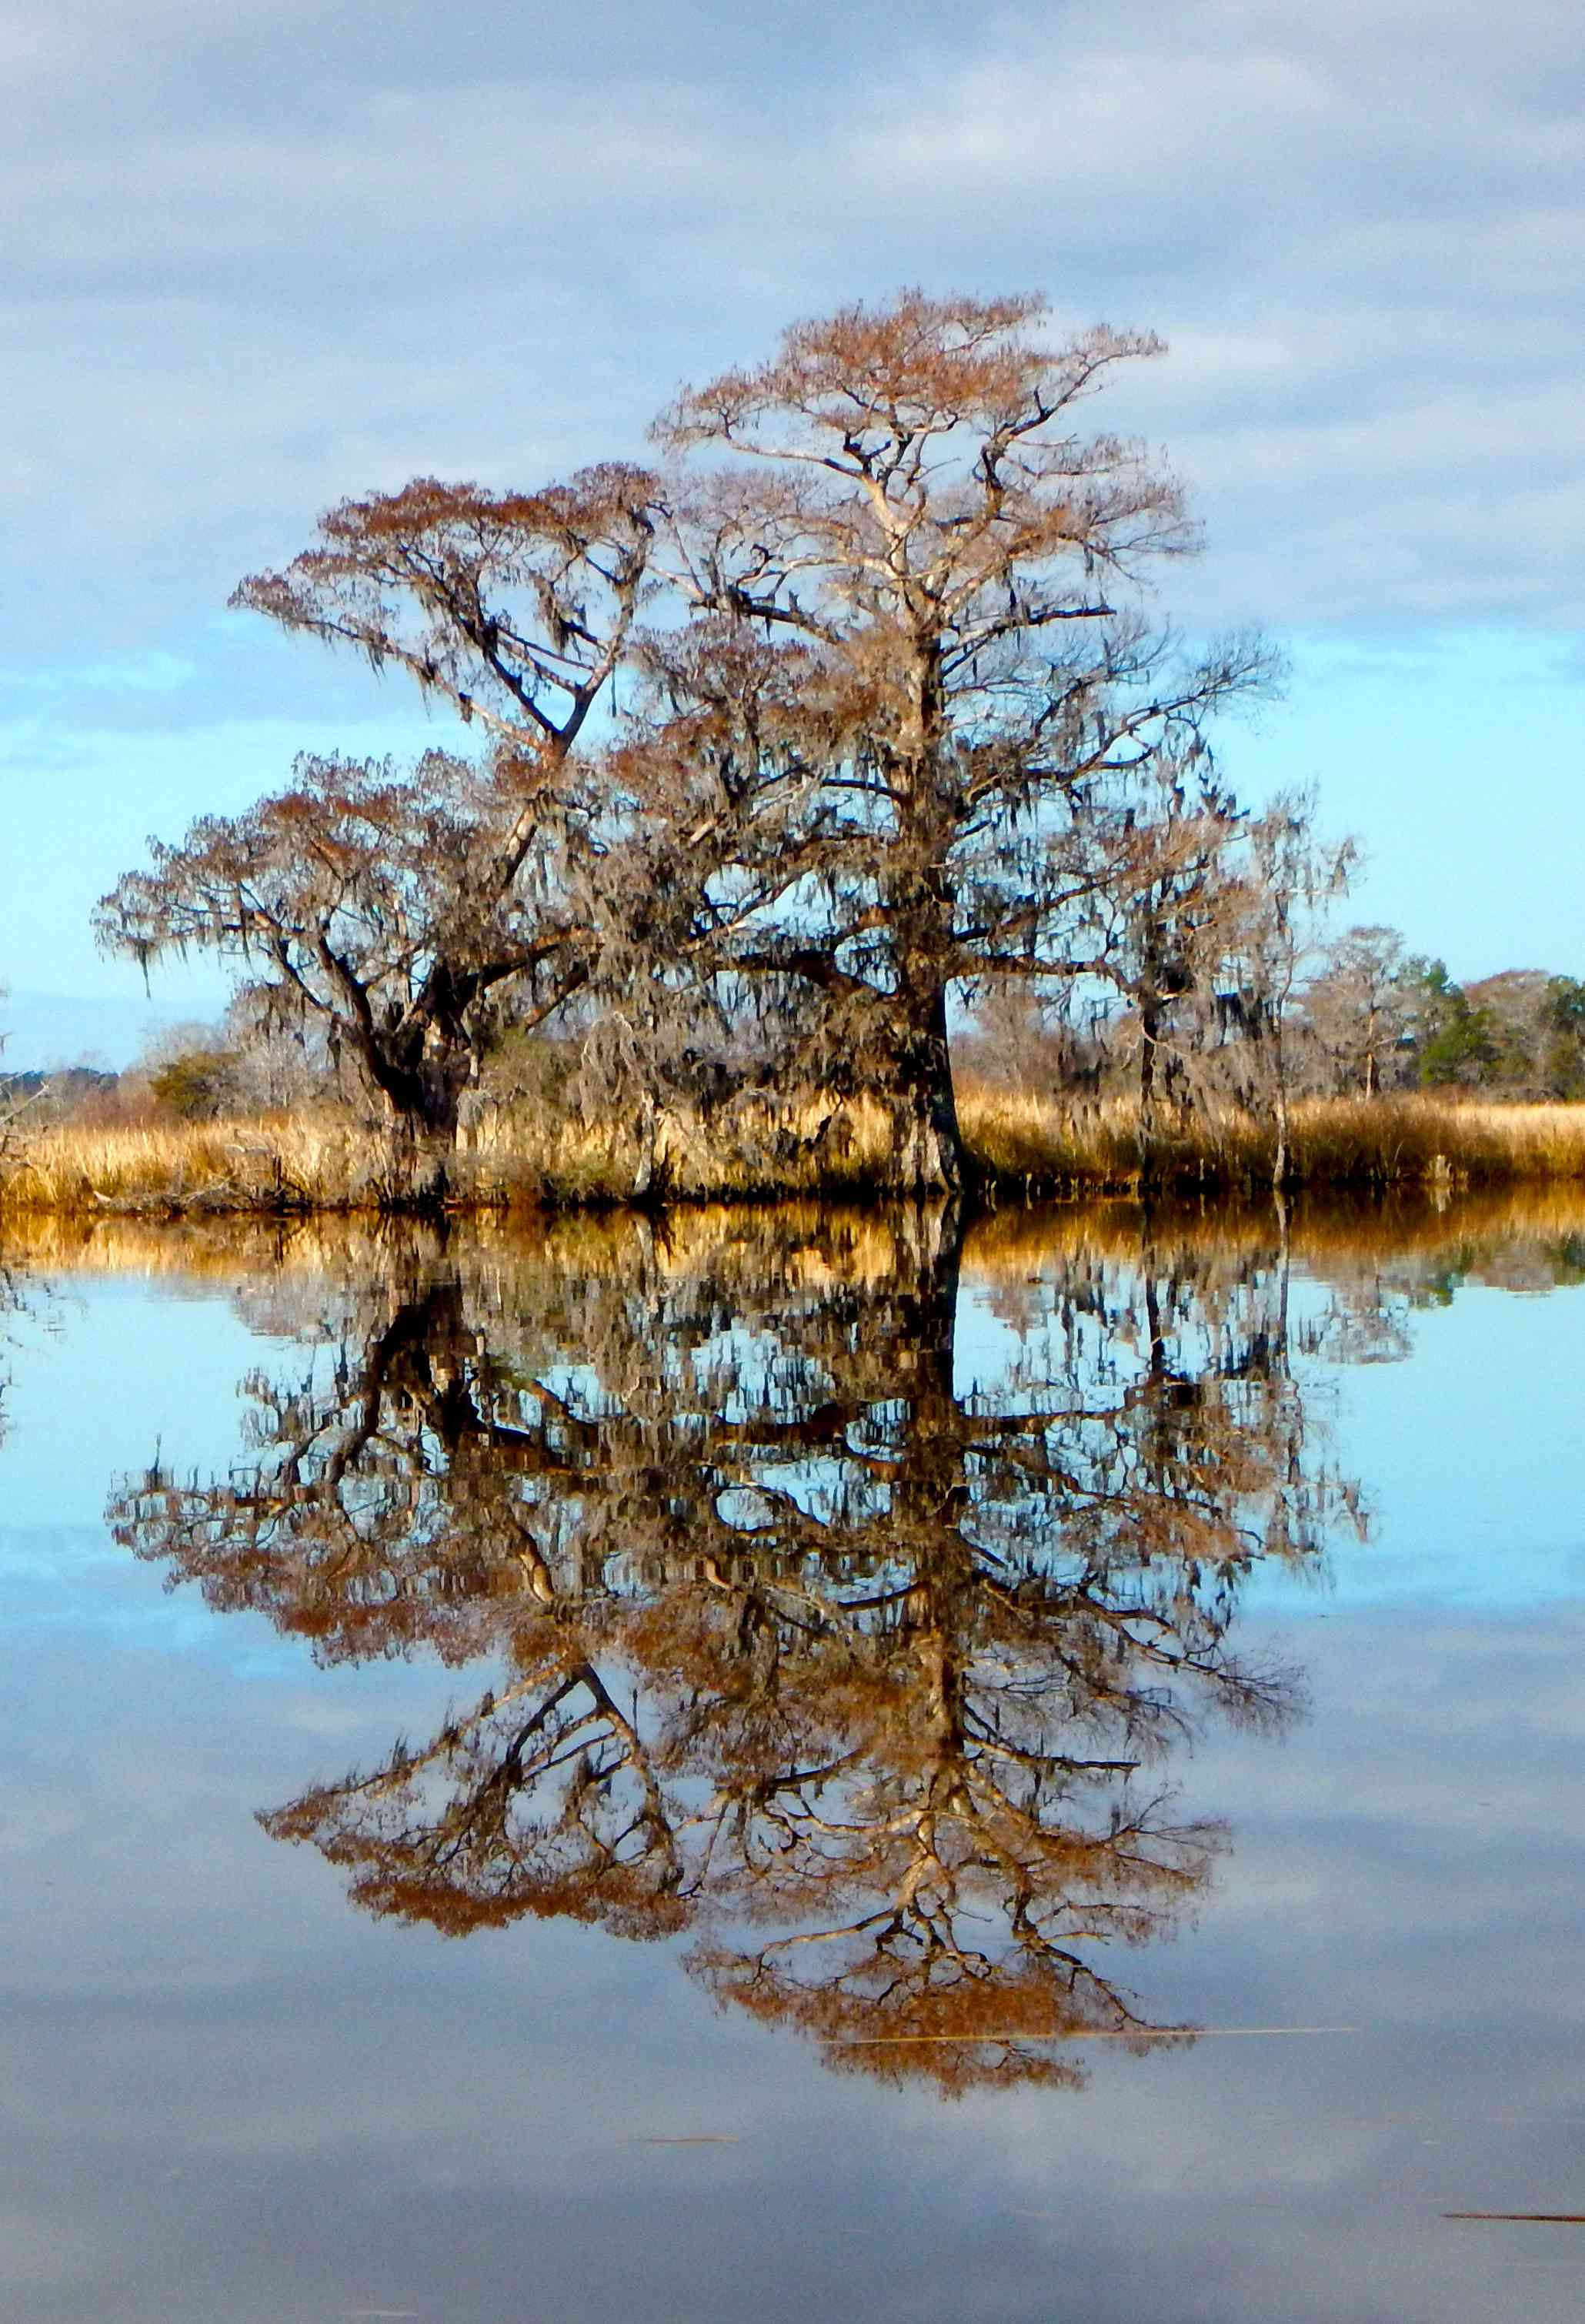 Two large cypress trees, with their reflection also shown in the water